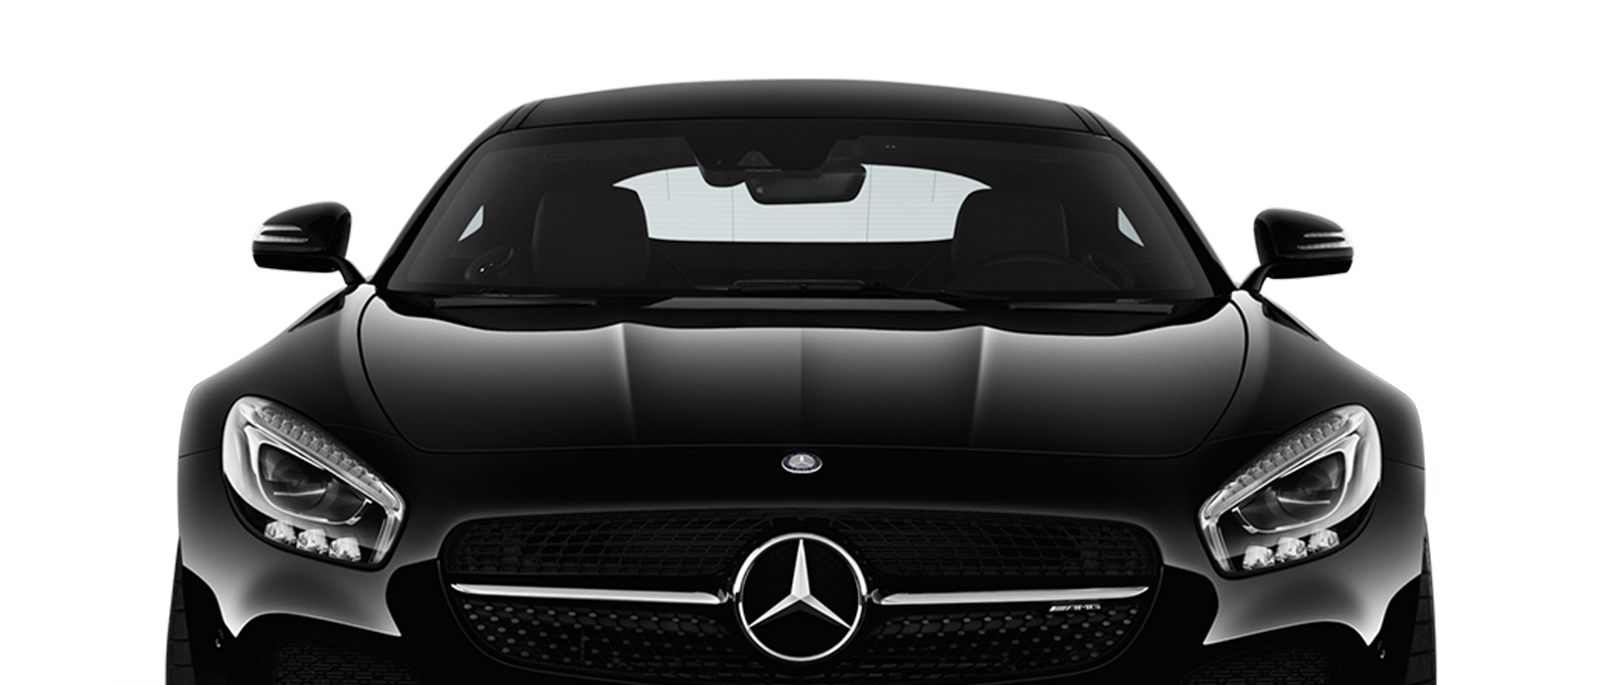 Mercedes benz amg gt exotic car collection by enterprise for Enterprise mercedes benz